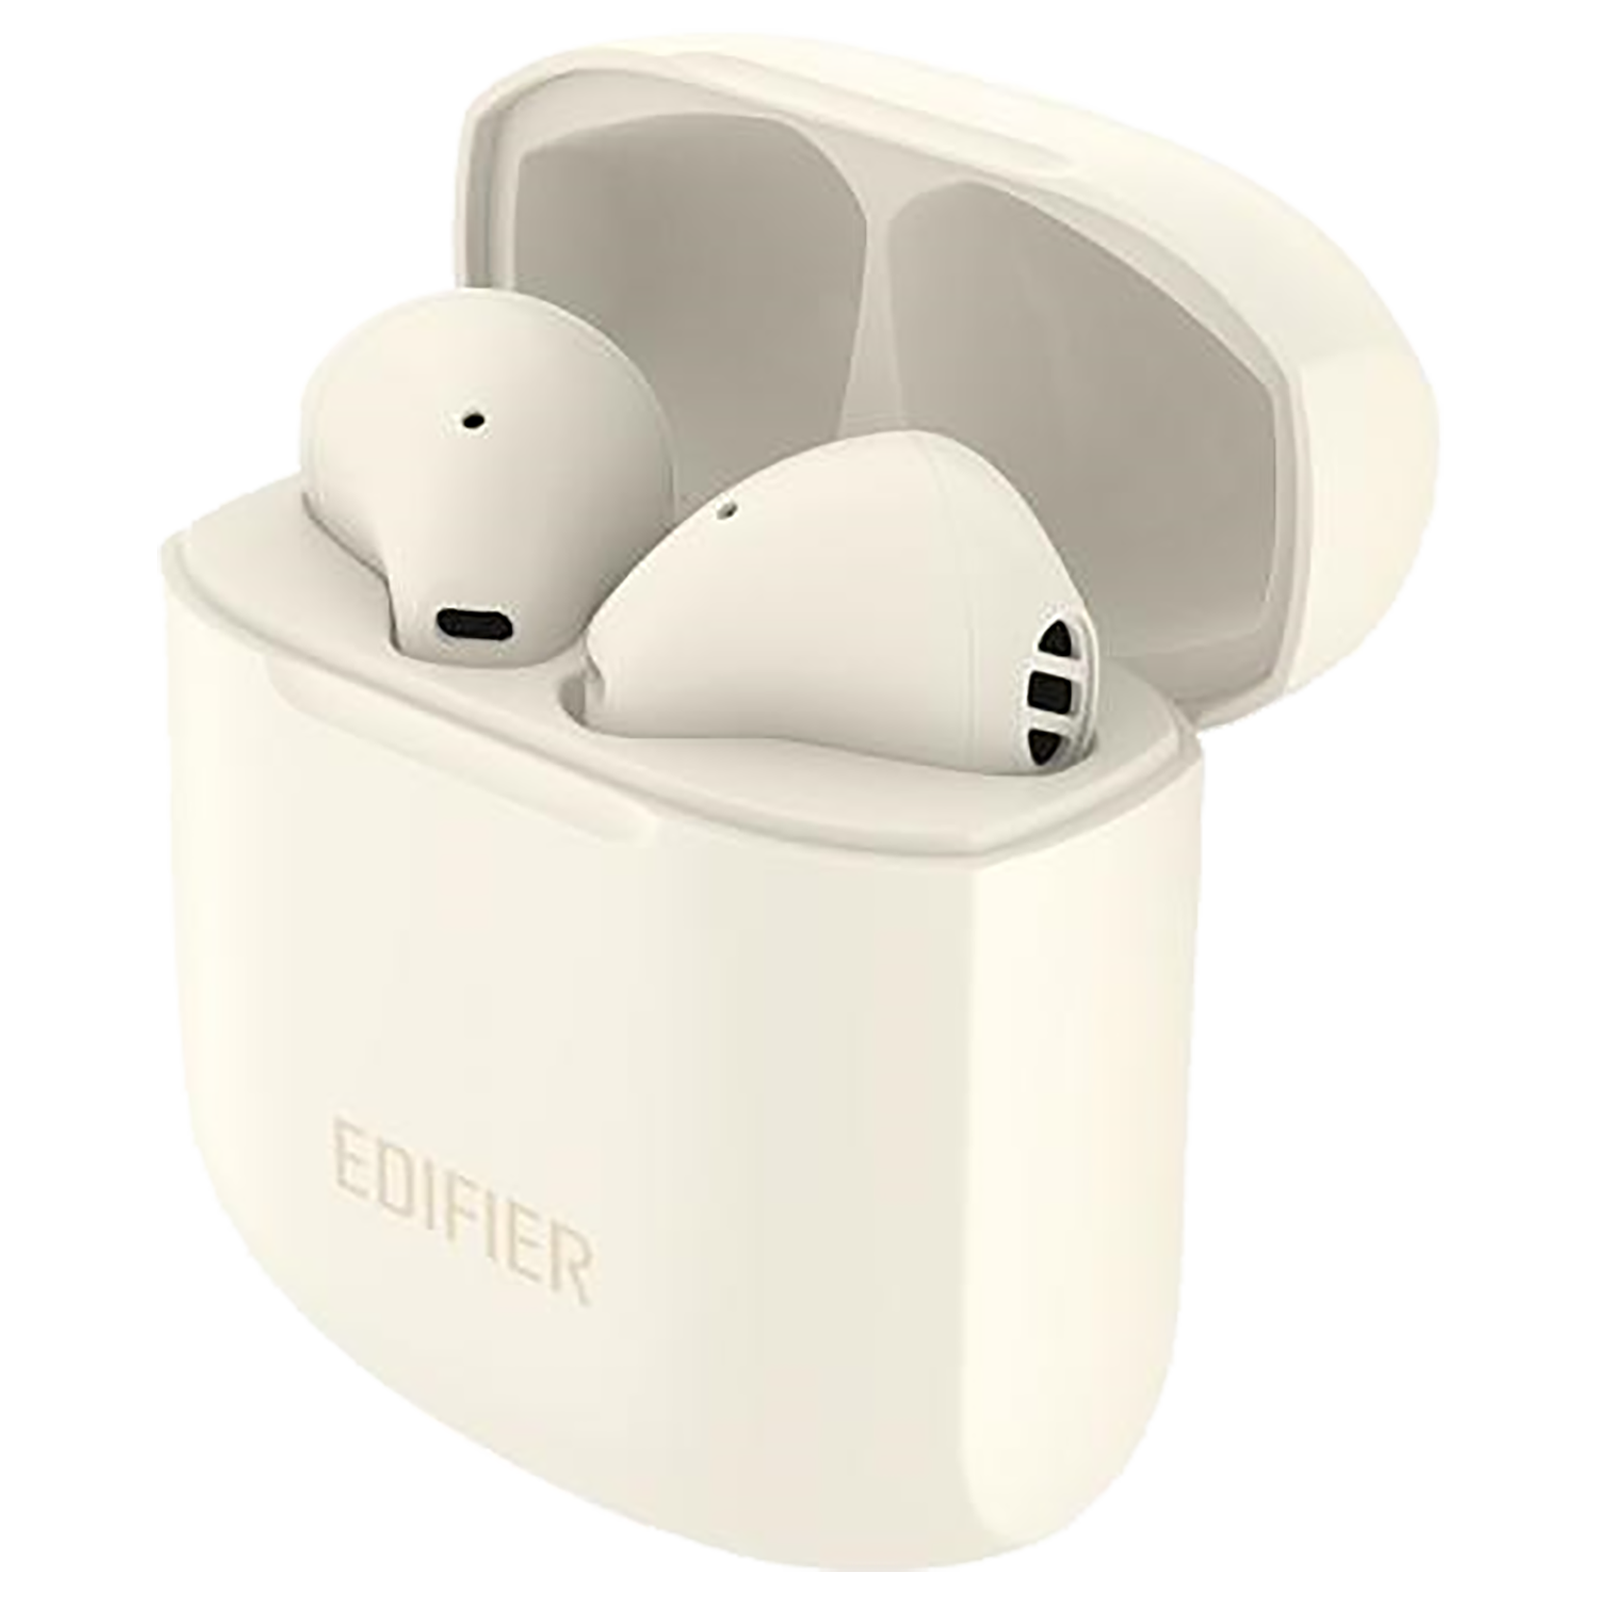 Edifier TWS 200 Plus In-Ear Active Noise Cancellation Truly Wireless Earbuds With Mic (Bluetooth 4.0, Qualcomm TrueWireless Mirroring Technology, Ivory)_1